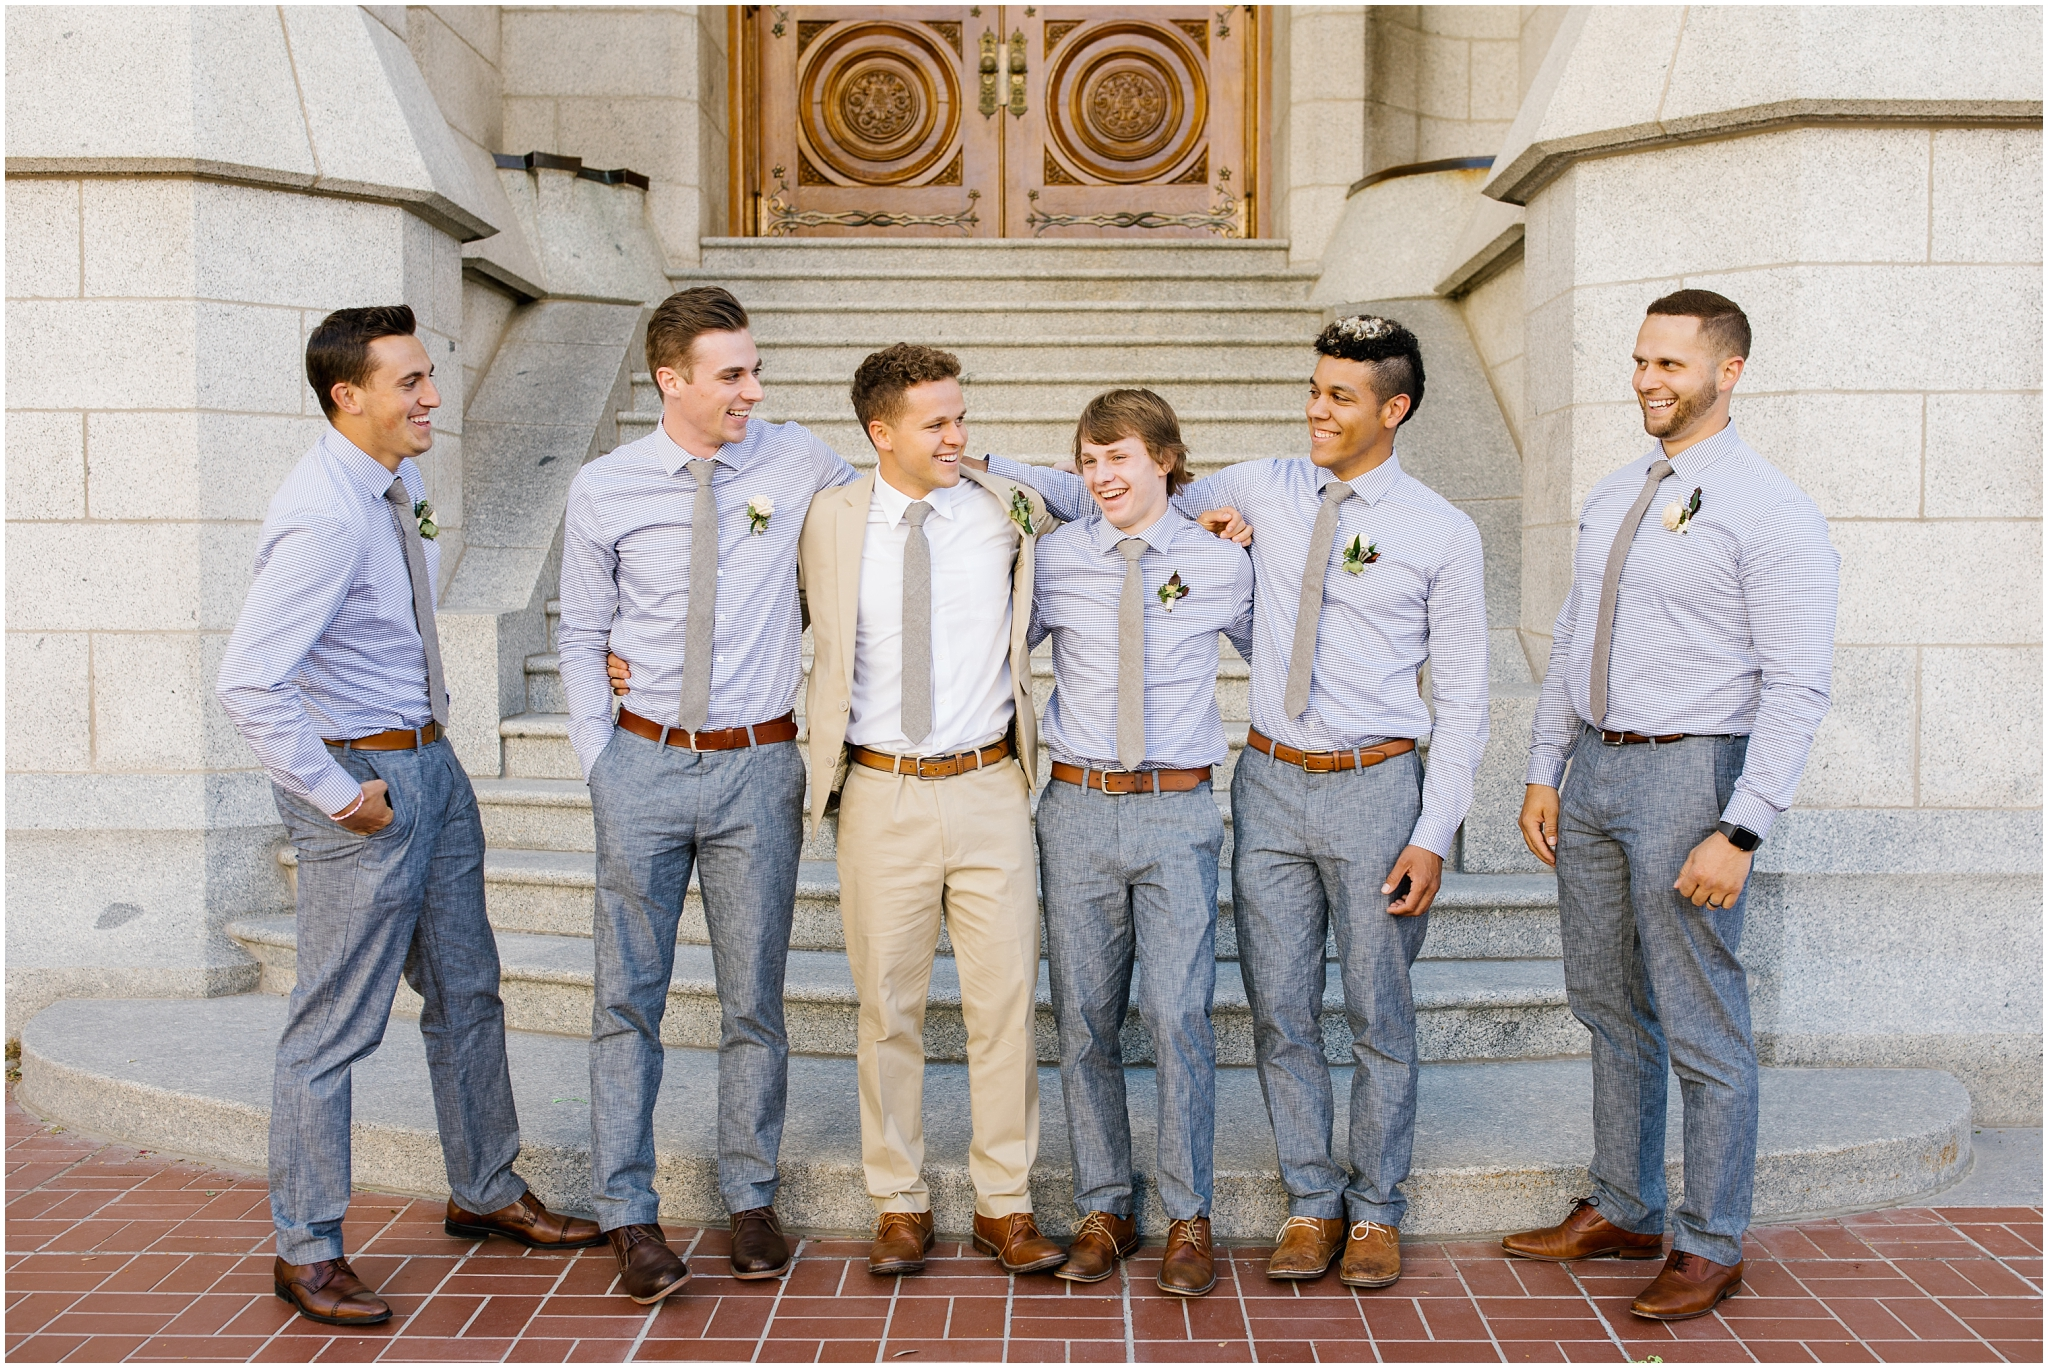 JC-Wedding-143_Lizzie-B-Imagery-Utah-Wedding-Photographer-Salt-Lake-City-Temple-Joseph-Smith-Memorial-Building-Reception.jpg